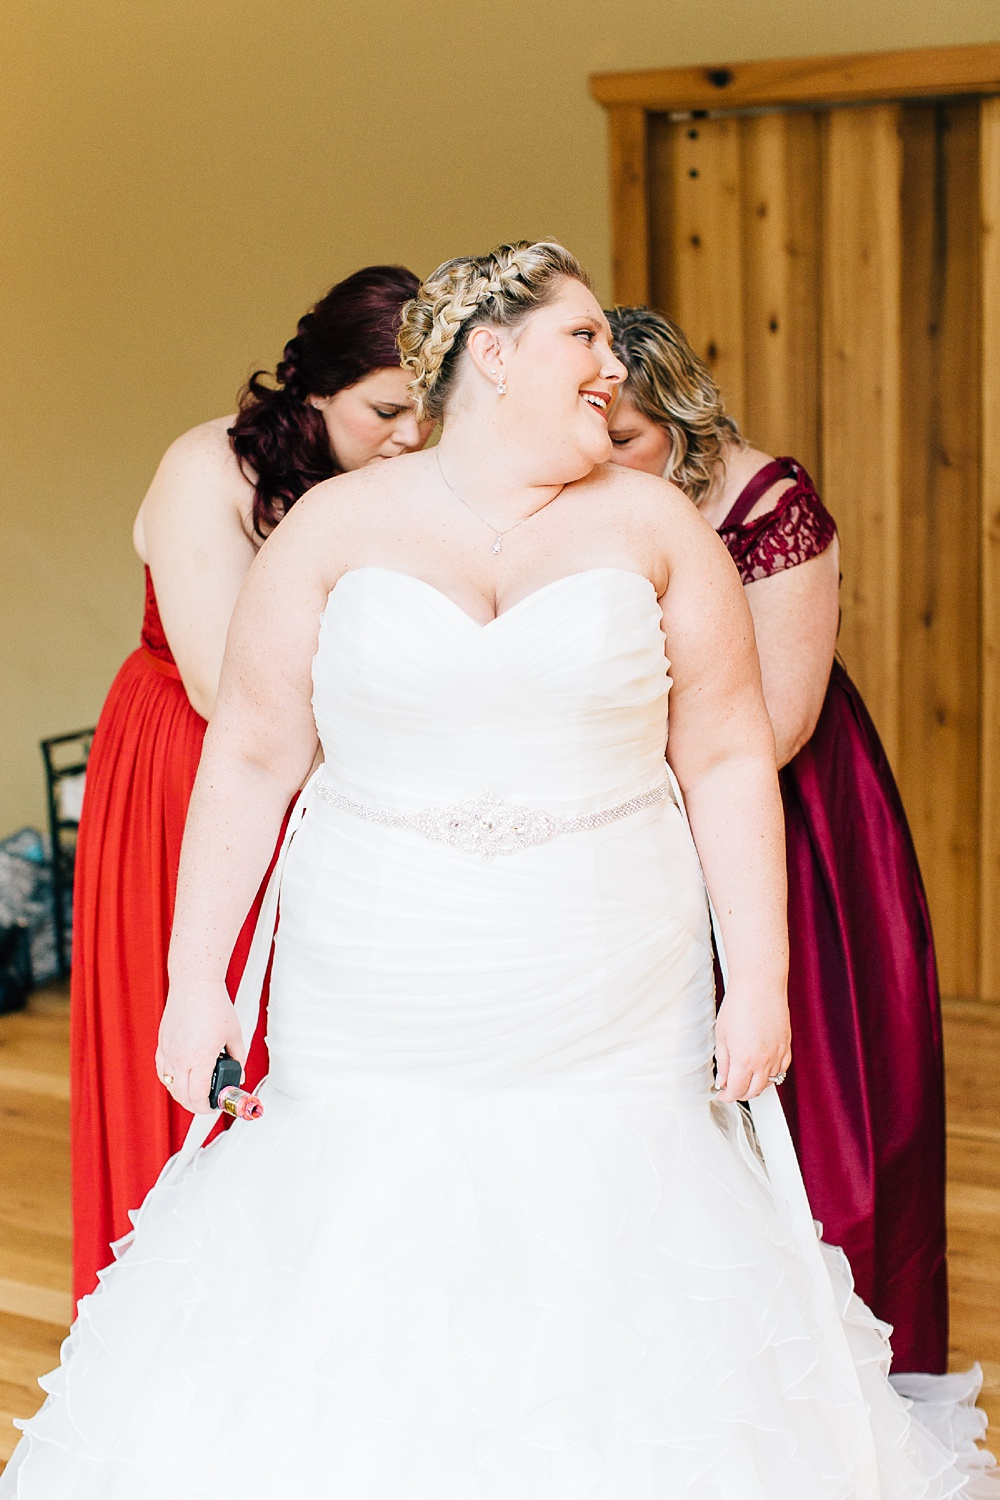 bride gets in her wedding dress with the help of her mother and bridesmaid